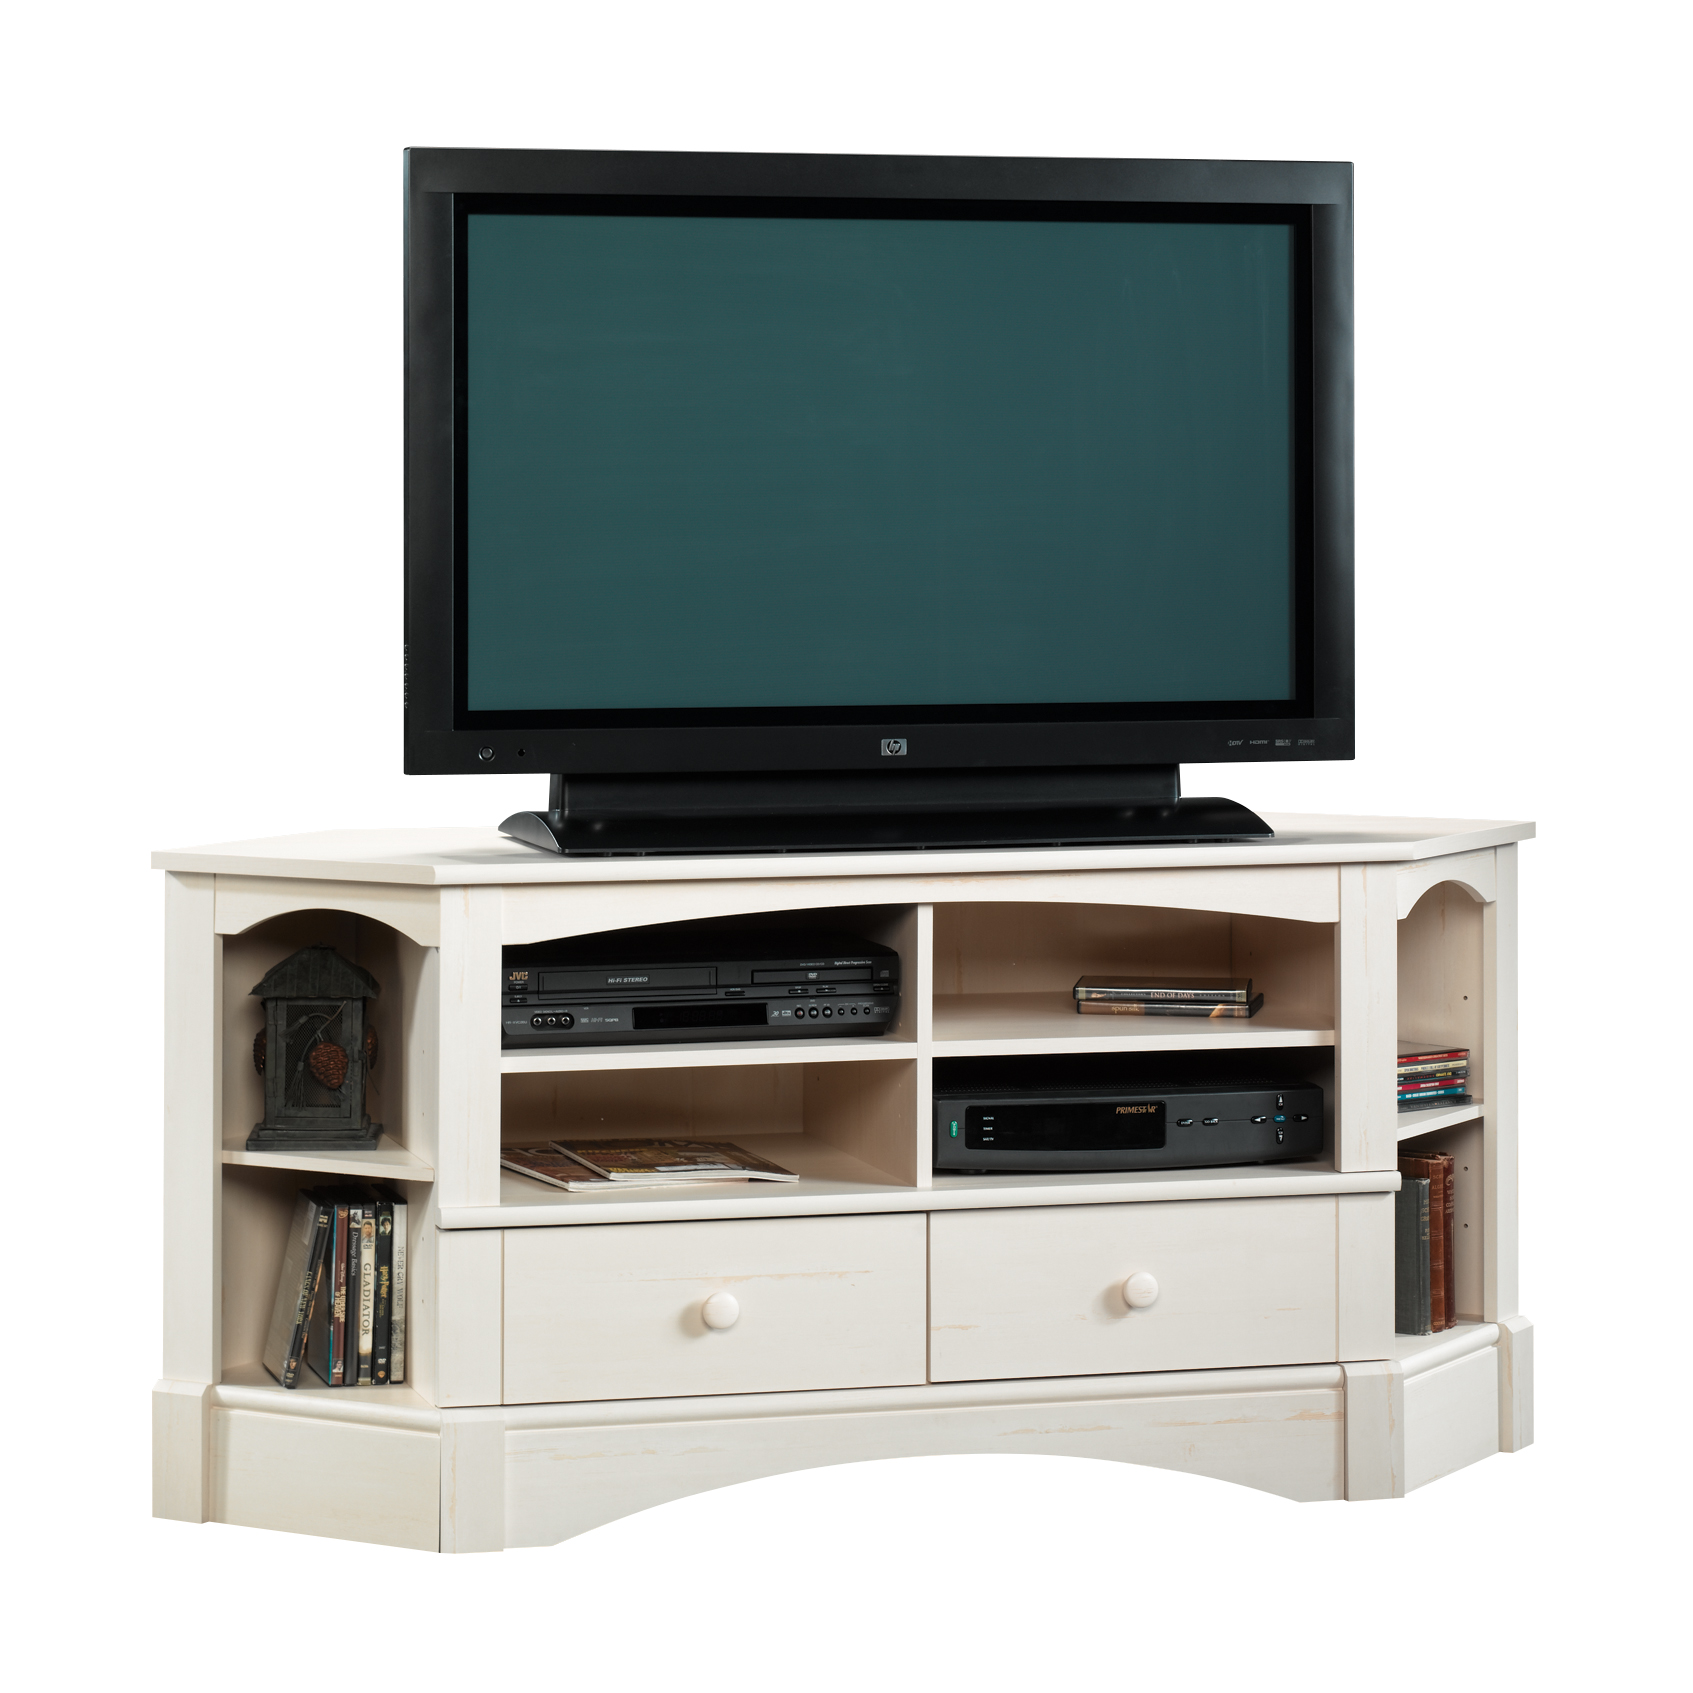 Sauder Harbor View Corner Entertainment Credenza For Tvs Up To 60